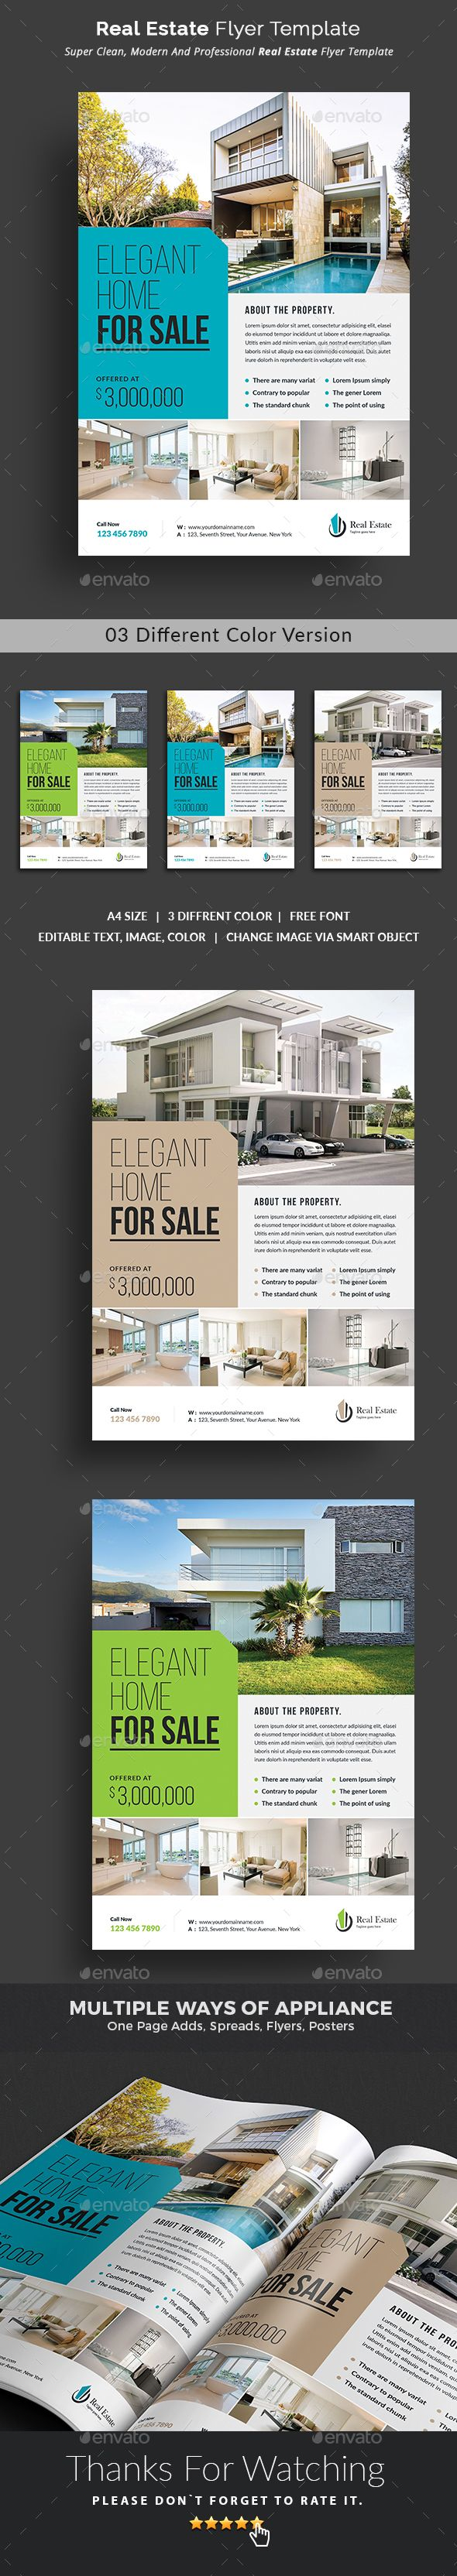 Real Estate Flyer  Real Estate Flyers Flyer Template And Brochures